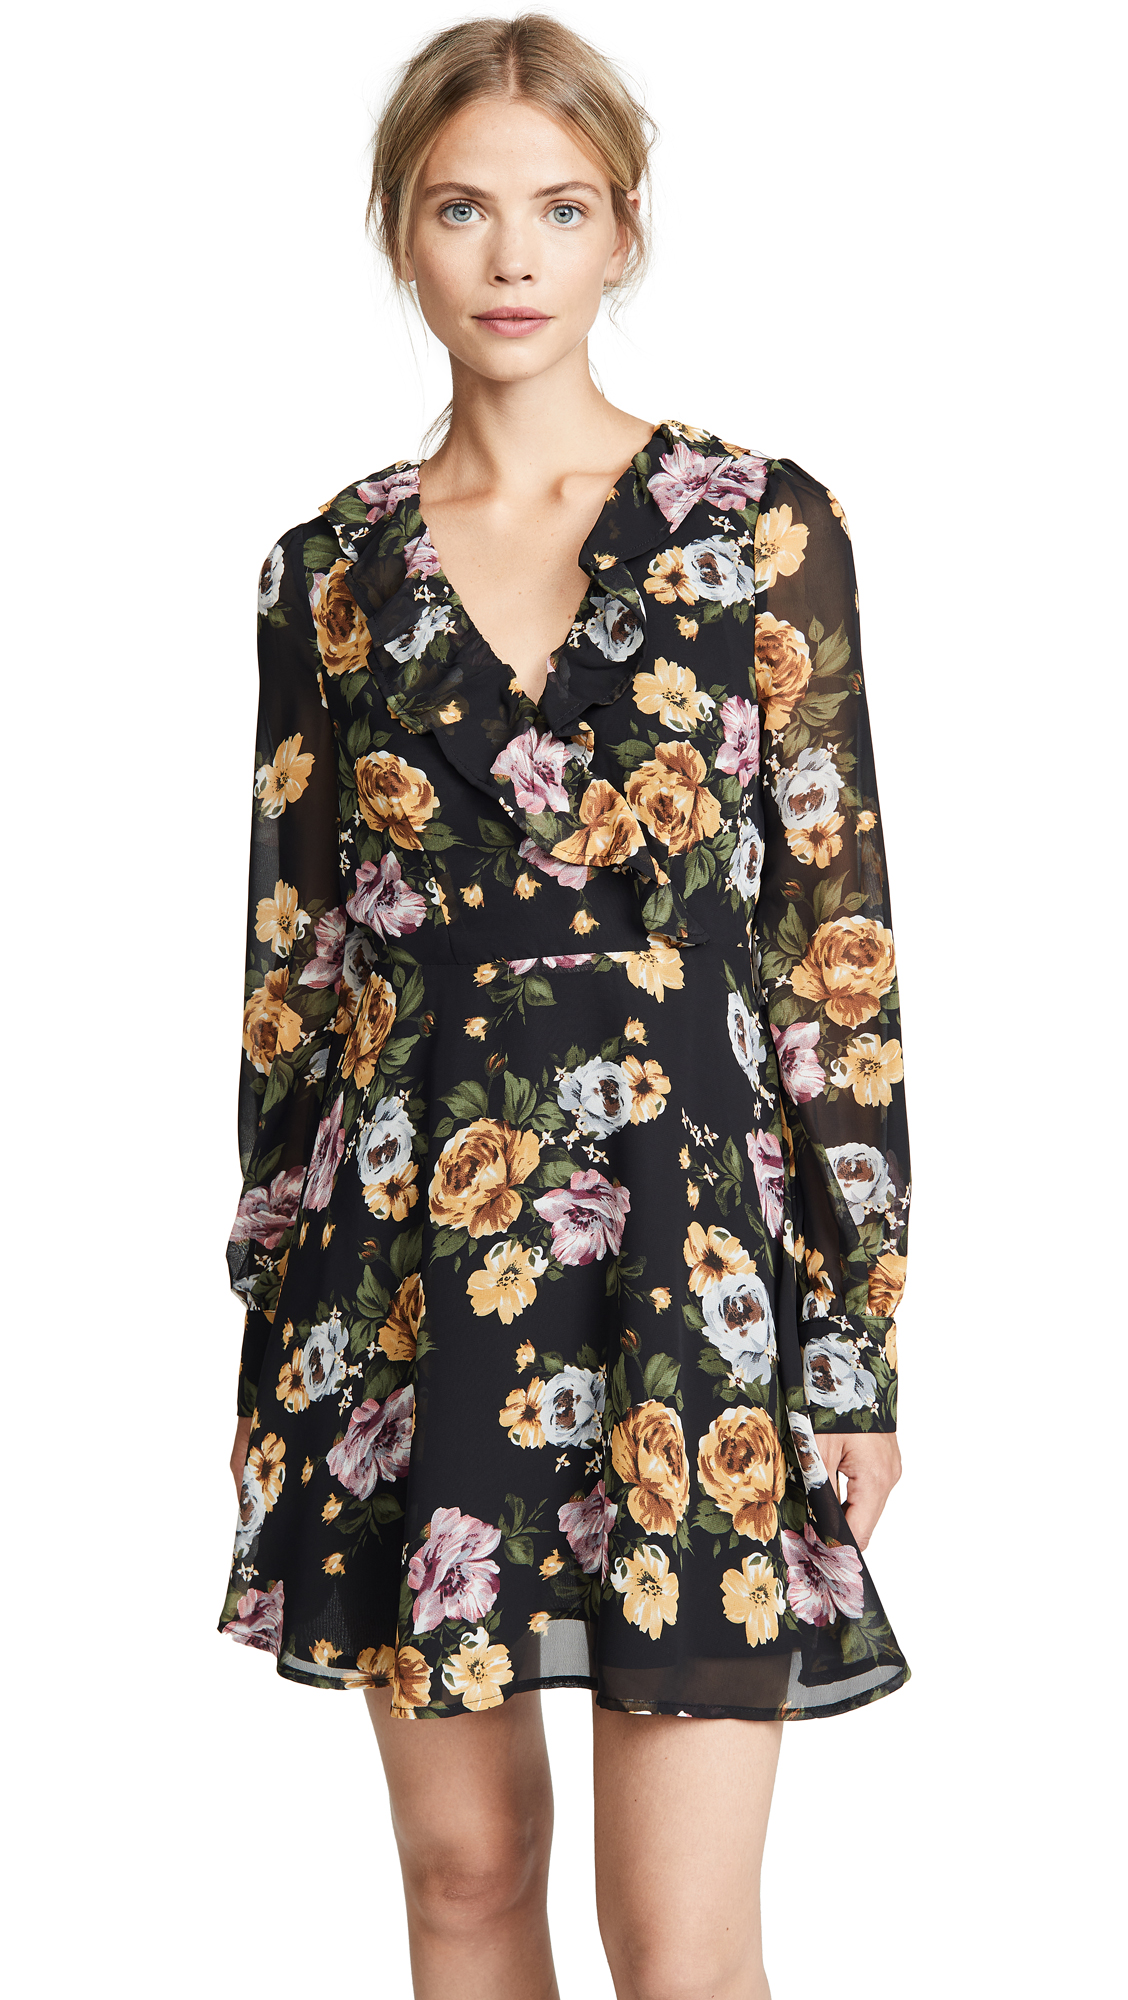 re: named Floral Long Sleeve Dress